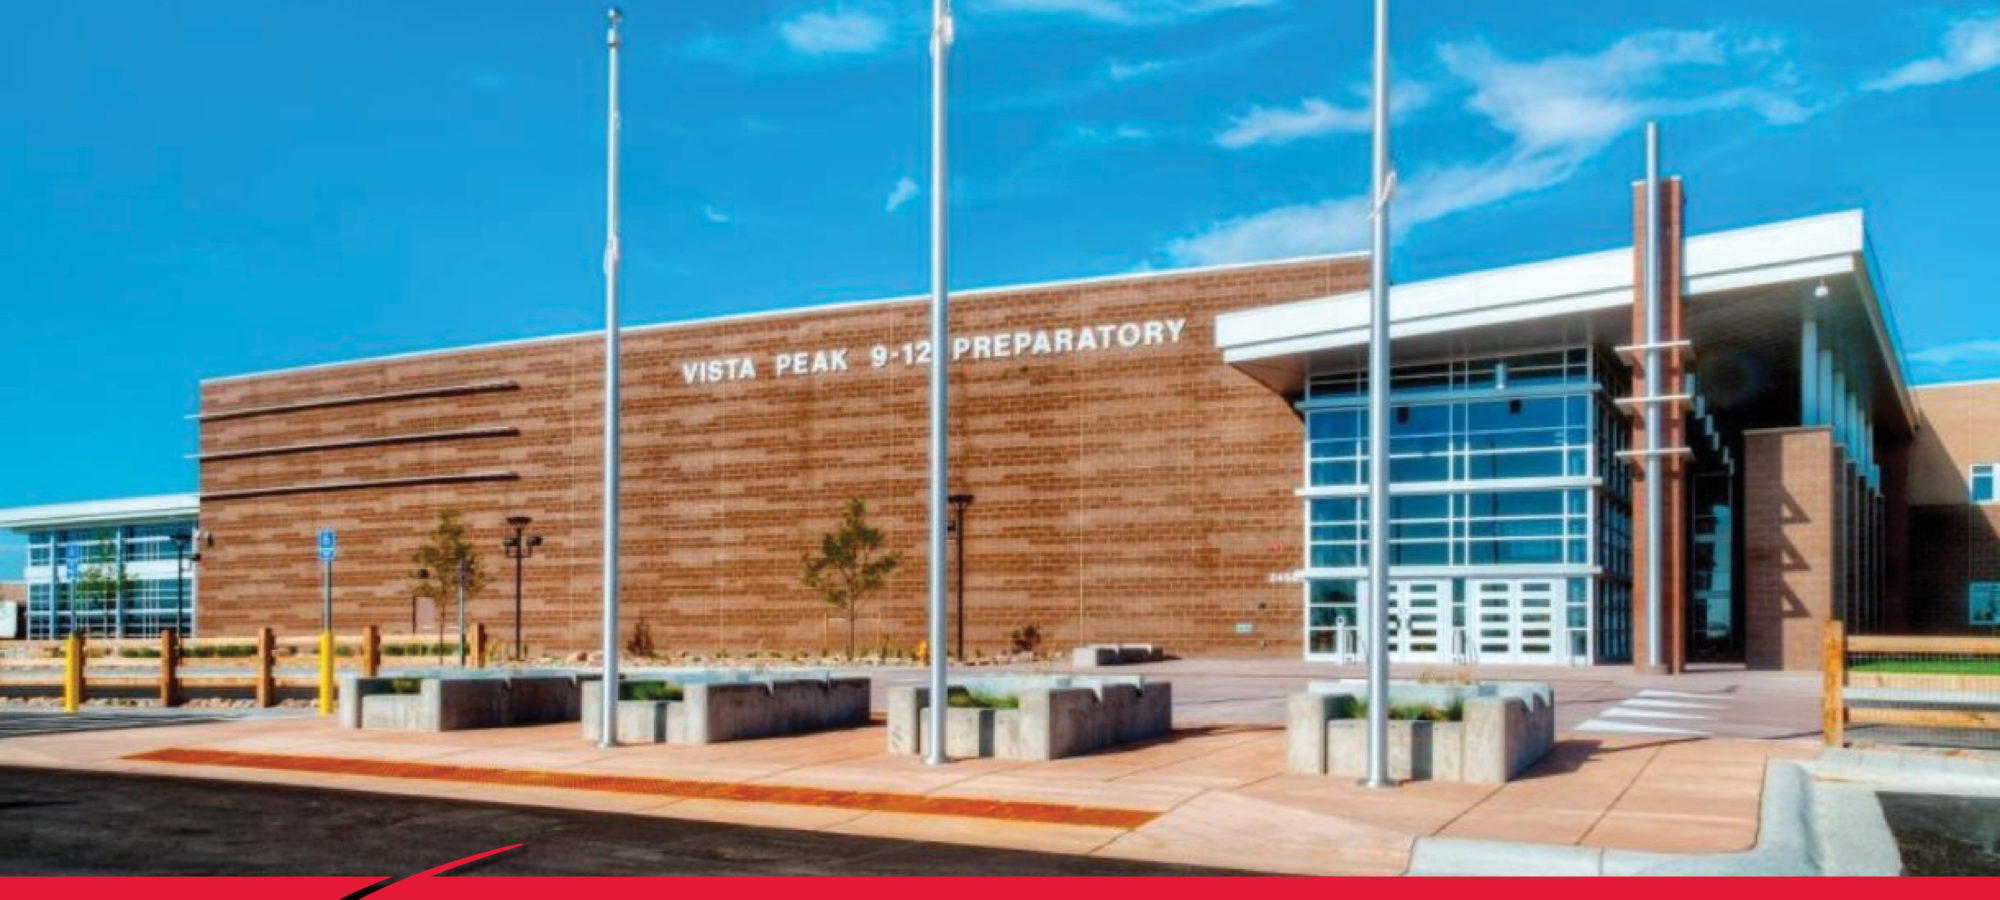 Aurora Public Schools – Vista Peak High School, Preparatory 9-12, Phase 2